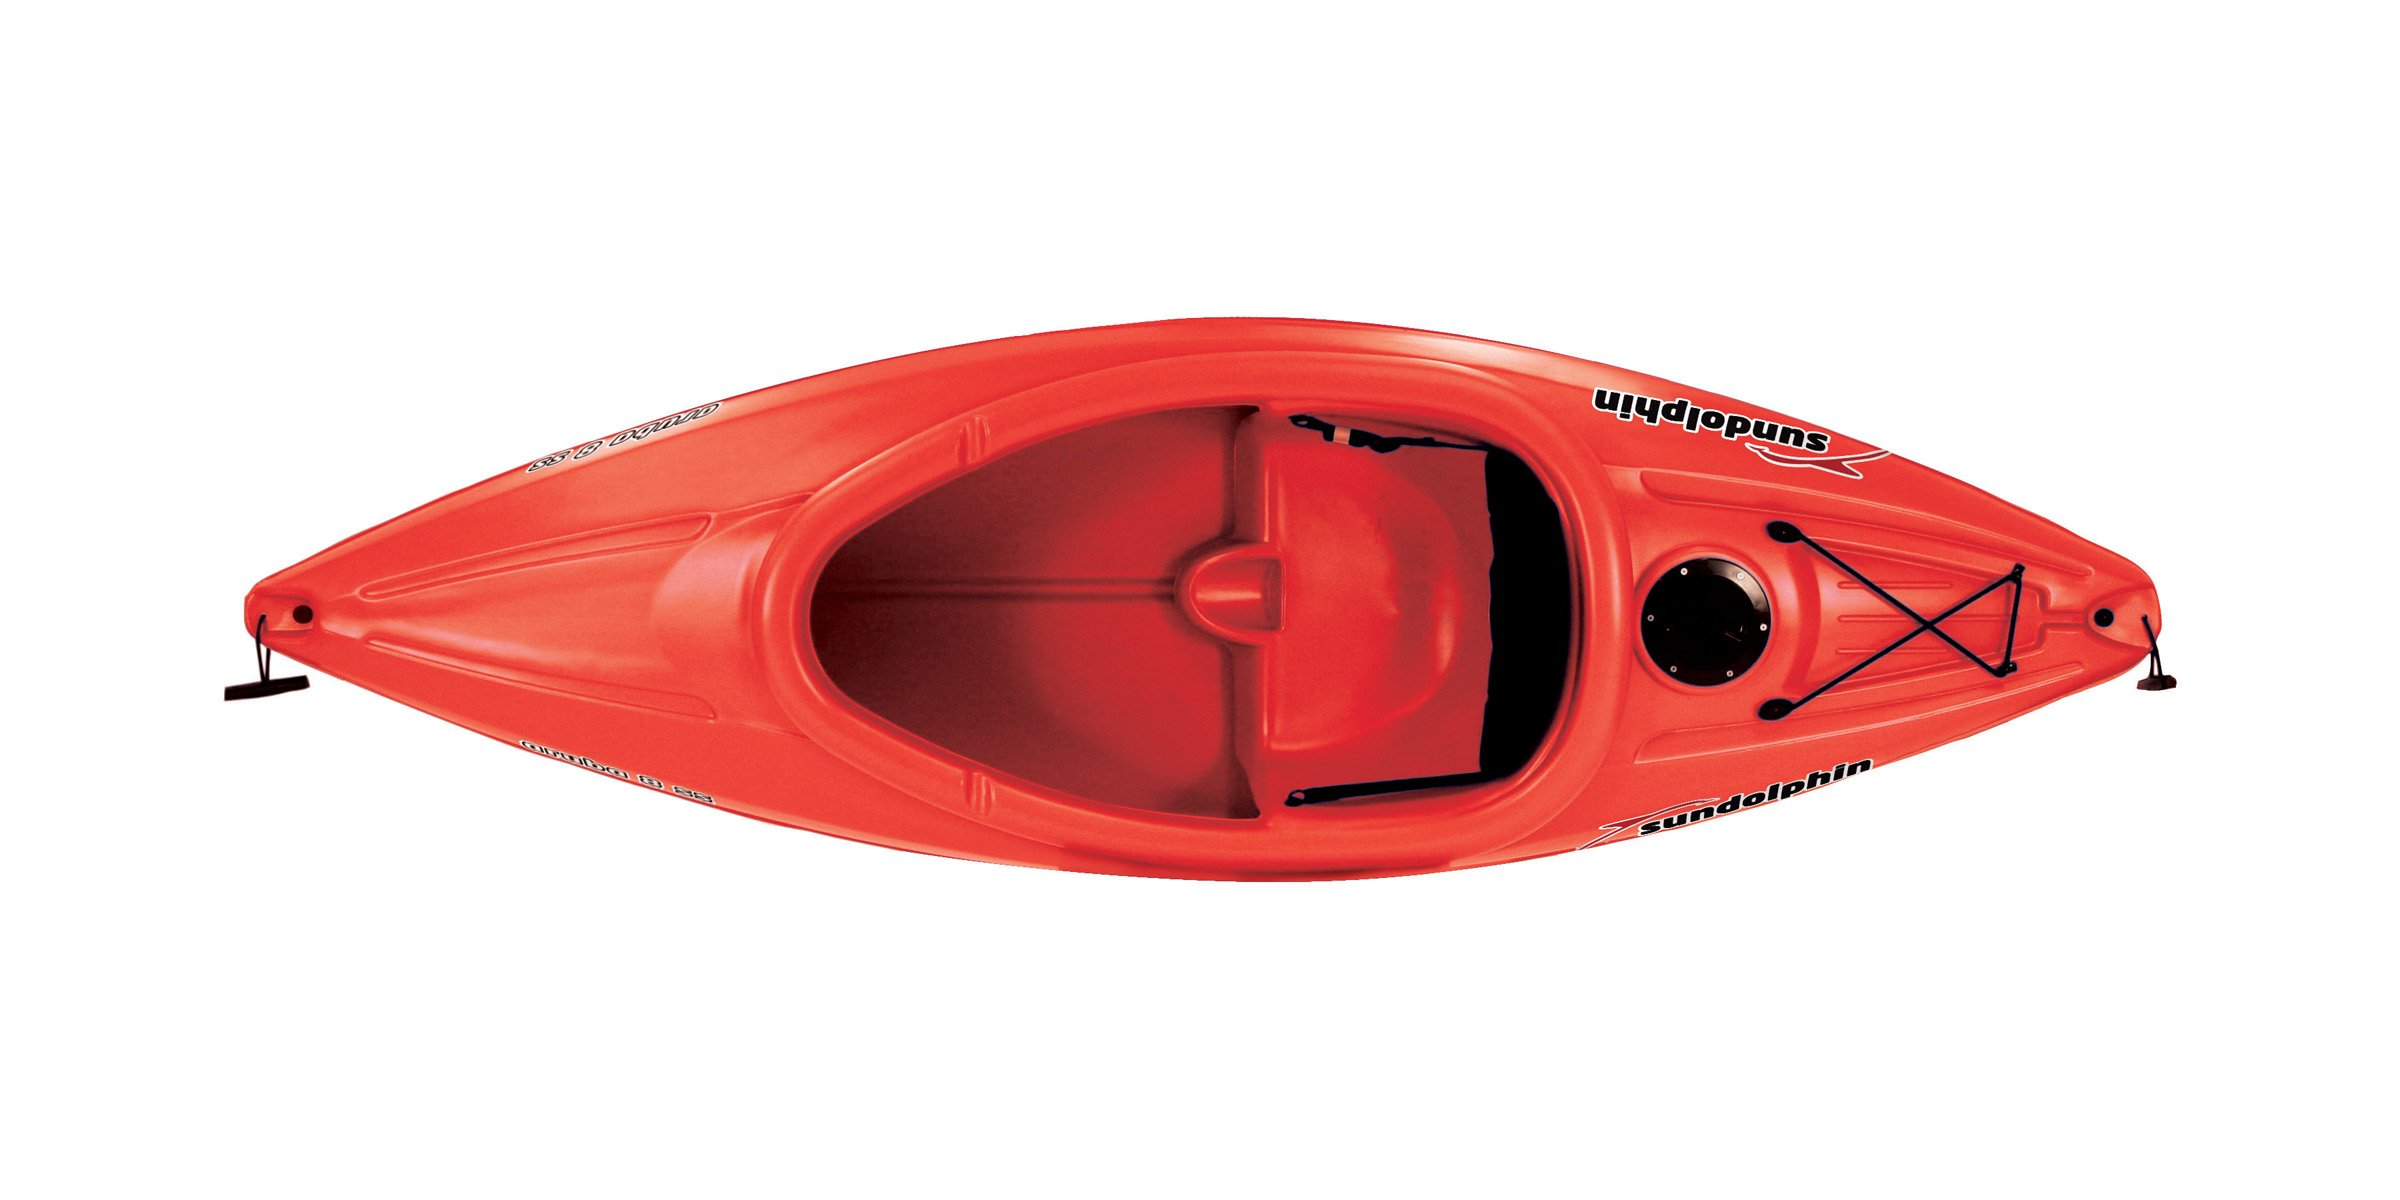 SUNDOLPHIN Sun Dolphin Aruba SS Sit-in Kayak (Red, 8-Feet) by SUNDOLPHIN (Image #2)